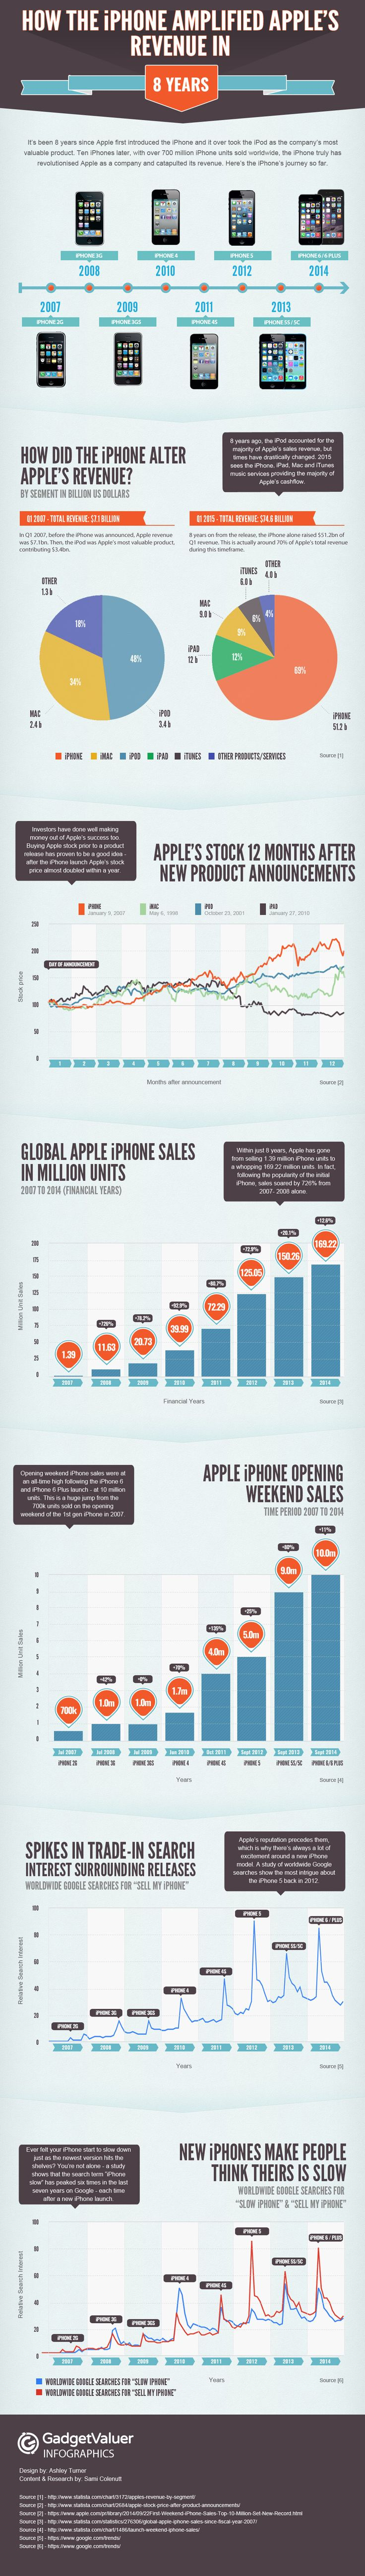 Infographic: How the iPhone amplified Apple's revenue in 8 years #iphone #apple #infographic